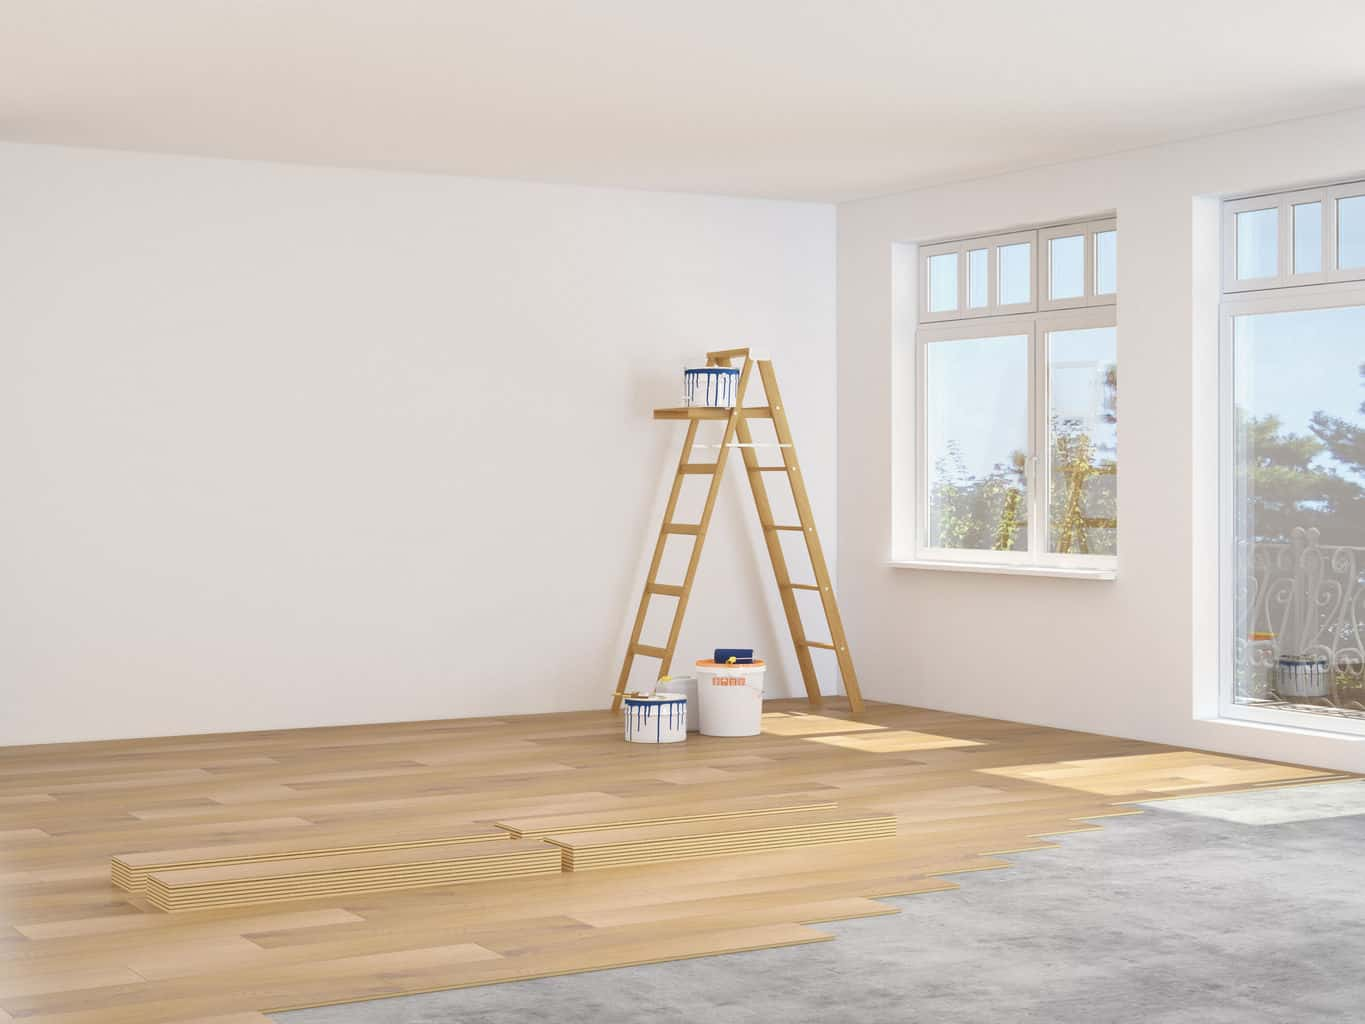 I Hope This All Makes Sense For You And That You Are Able To Adequately Remove Your Laminate Flooring Oftentimes House Projects Can Be Challenging And Take